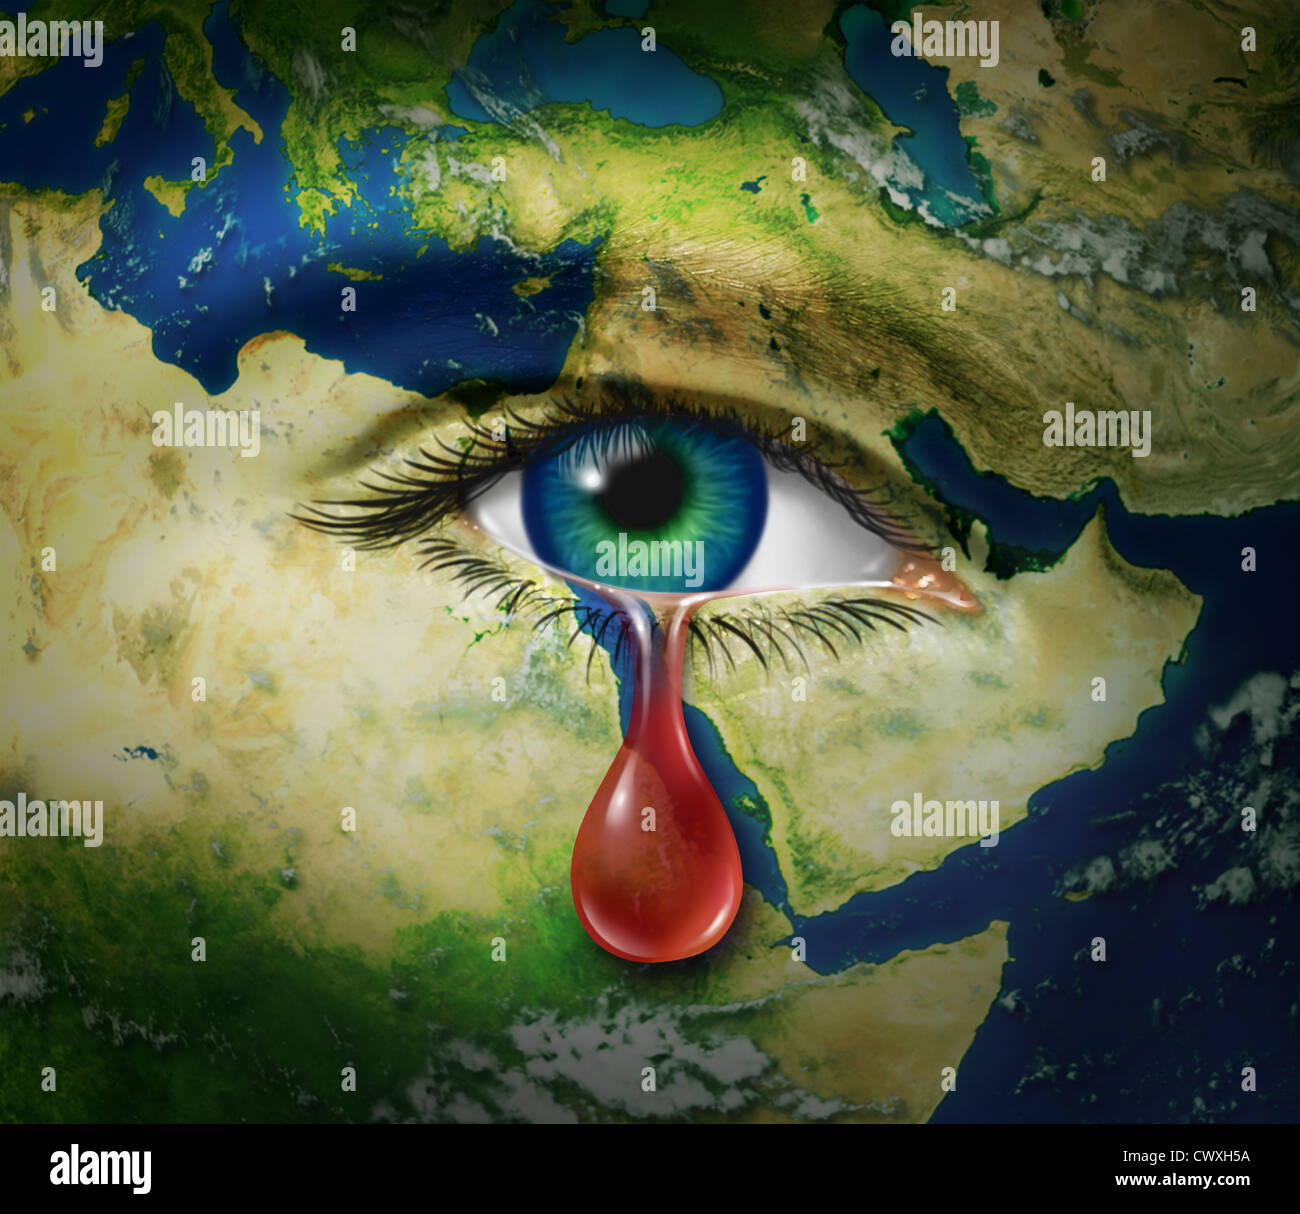 Violence in the middle east as a map of countries as egypt syria violence in the middle east as a map of countries as egypt syria iran israel saudi arabia libya yemen iraq with an eye that is crying a red tear of blood as gumiabroncs Images